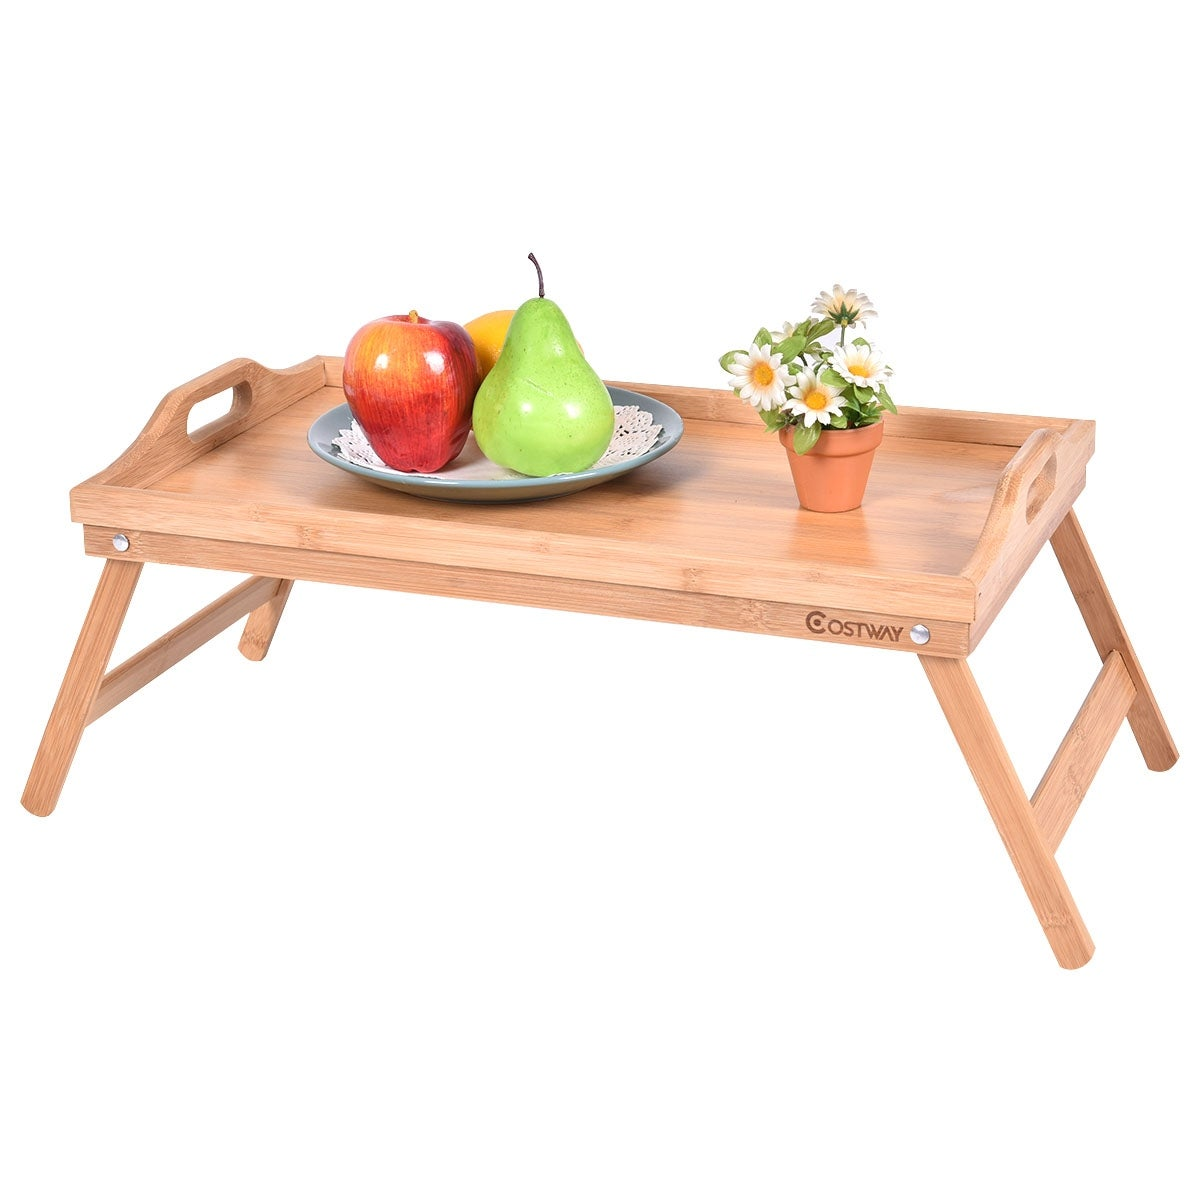 Costway Portable Bamboo Breakfast Bed Tray Serving Laptop Table Folding Leg  w/ Handle - Free Shipping On Orders Over $45 - Overstock.com - 23099908